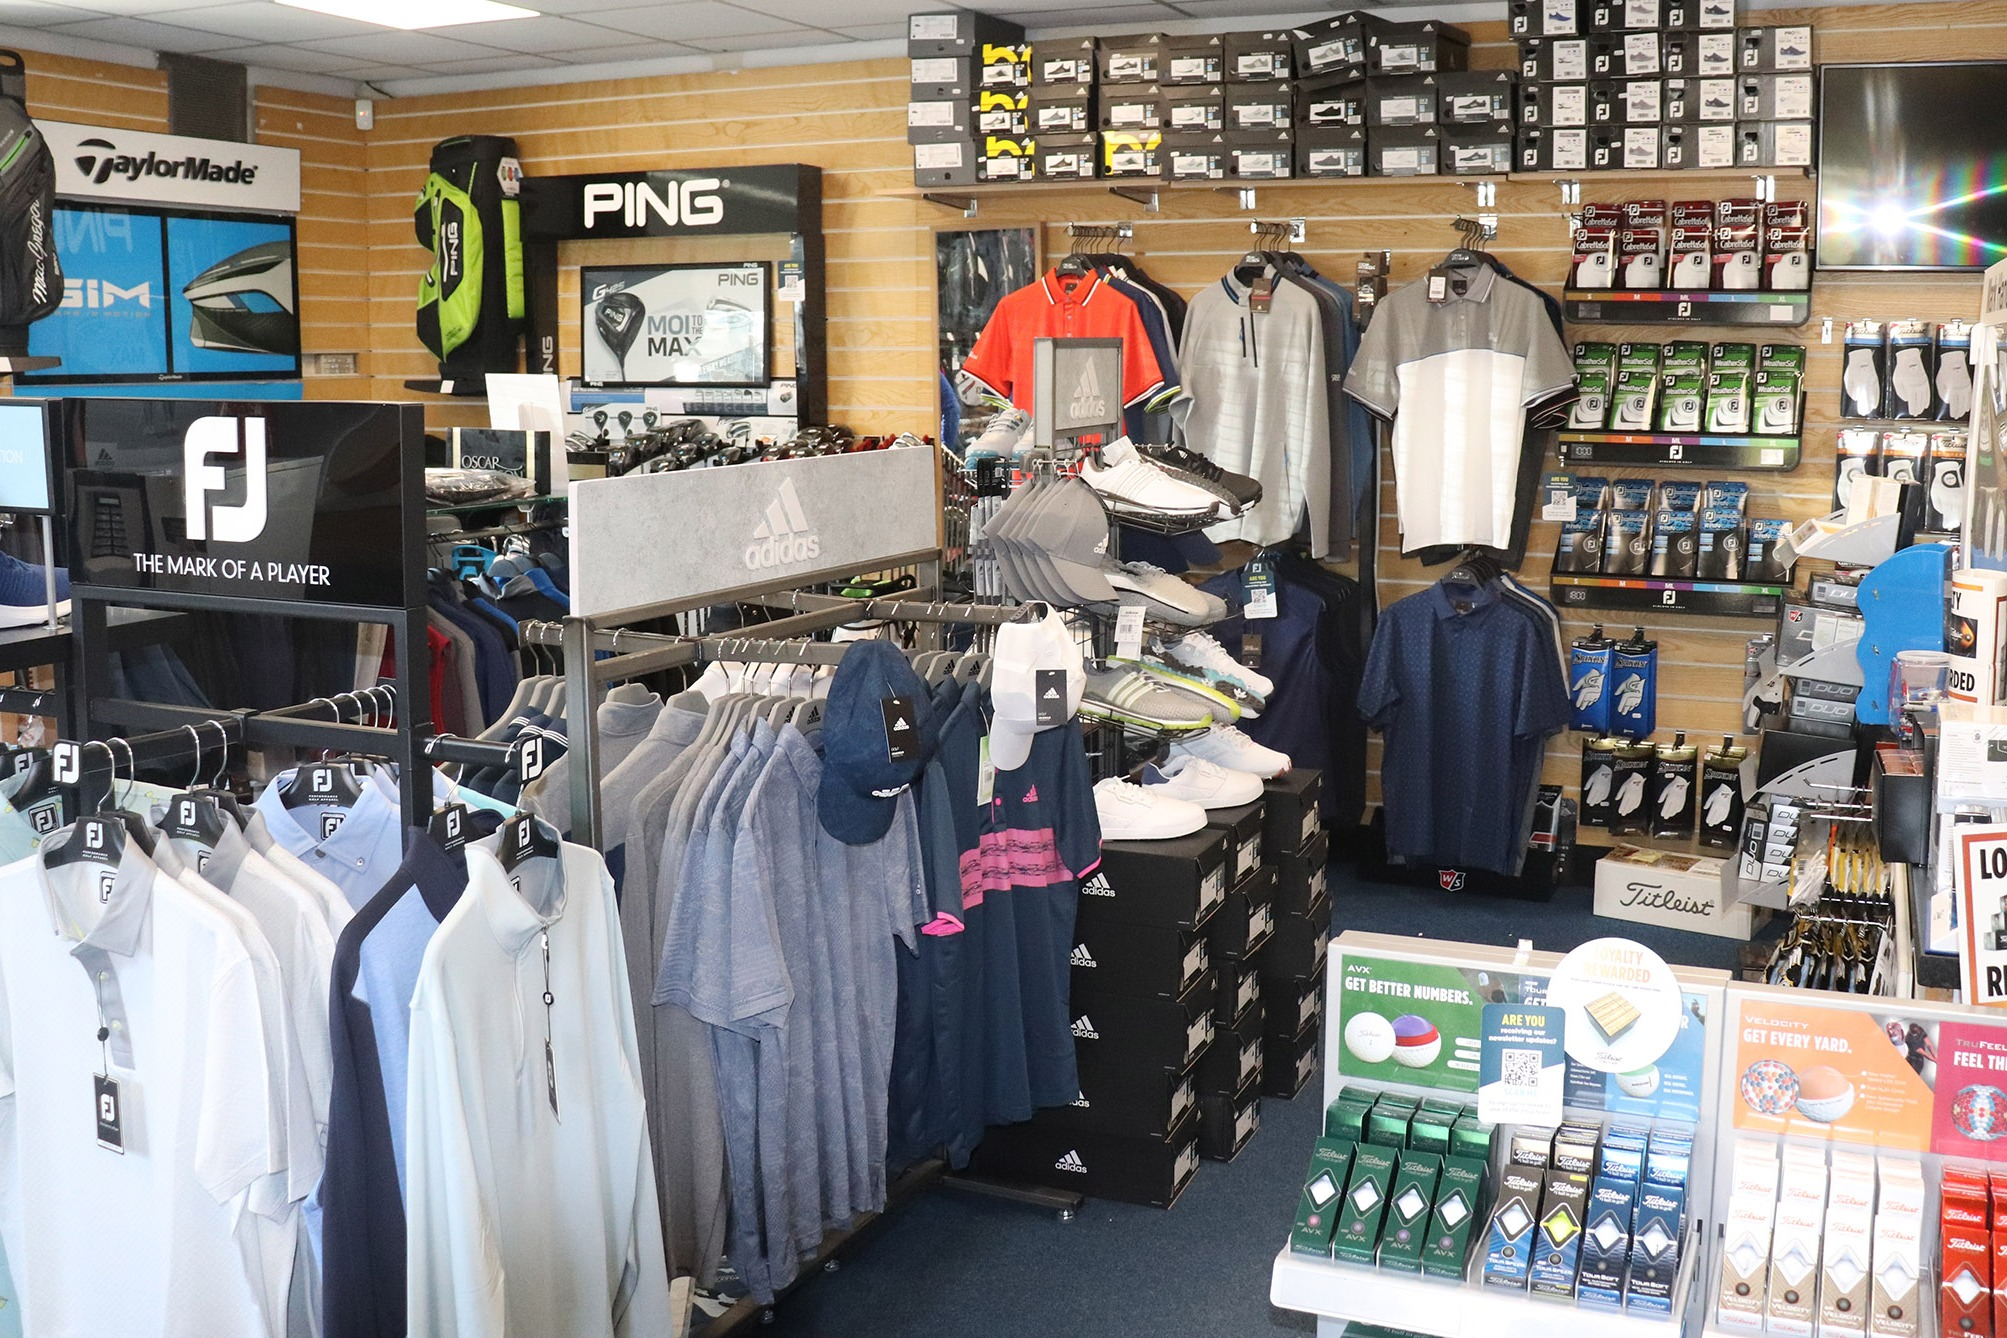 Golf bags, balls, gloves, refreshments & more